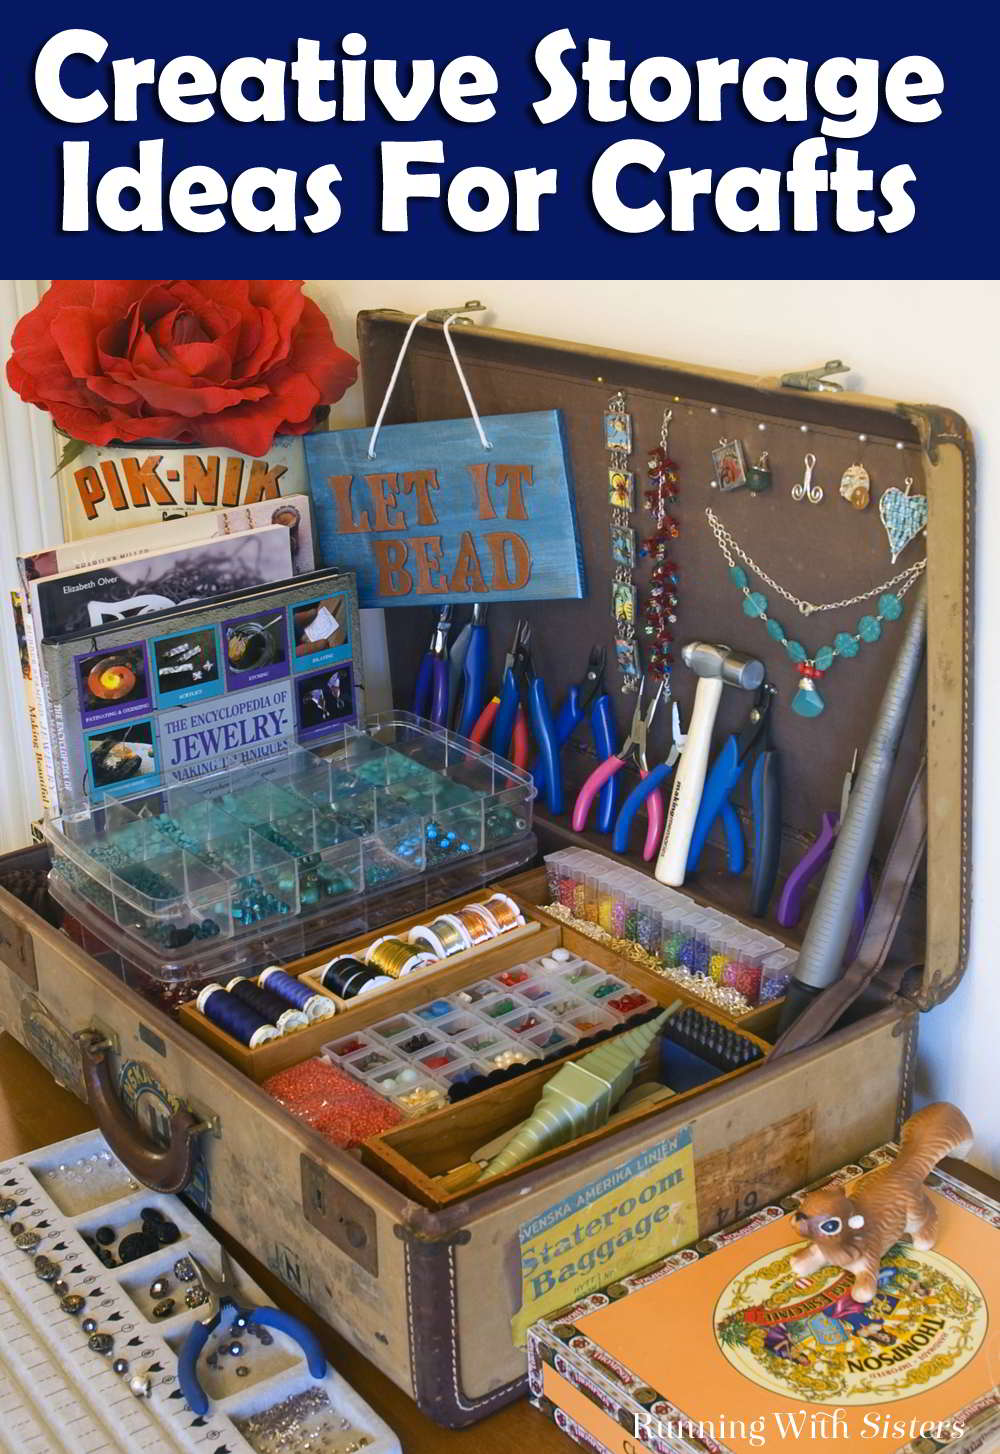 Fun and creative storage ideas for crafts! Craft materials are so pretty, why hide them? Plus seeing your craft supplies will inspire you to get creative!